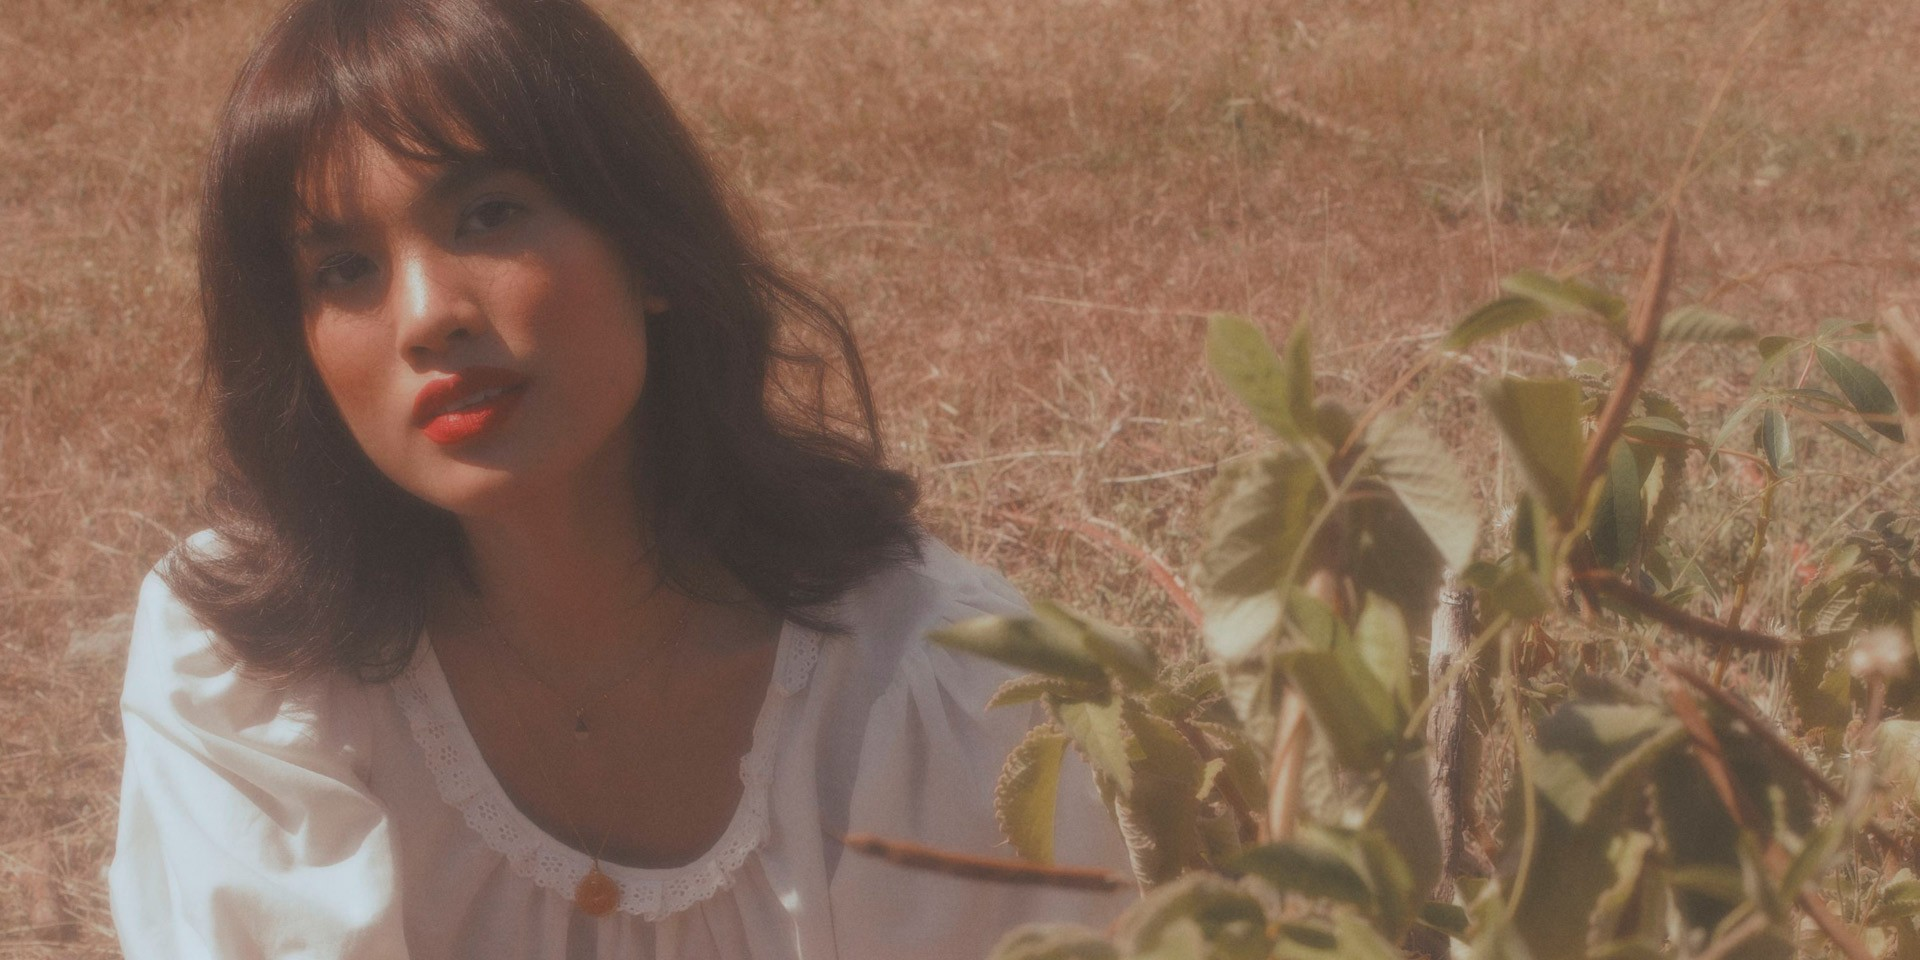 Niki Colet's Endless Summer EP: A track-by-track guide